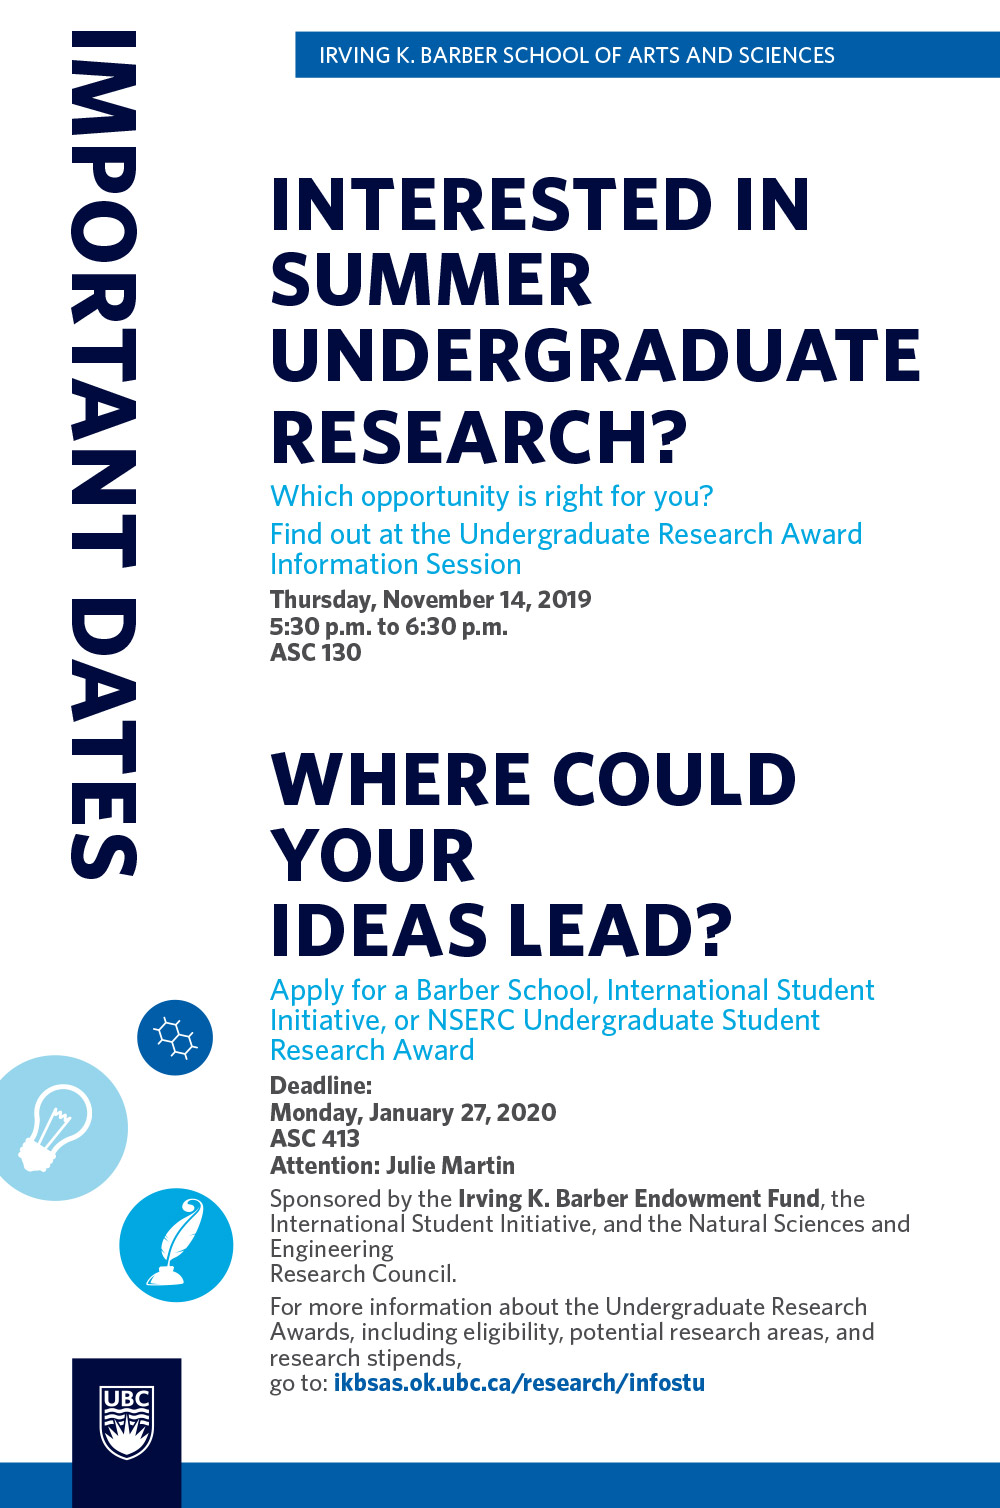 Interested in Summer Undergraduate Research